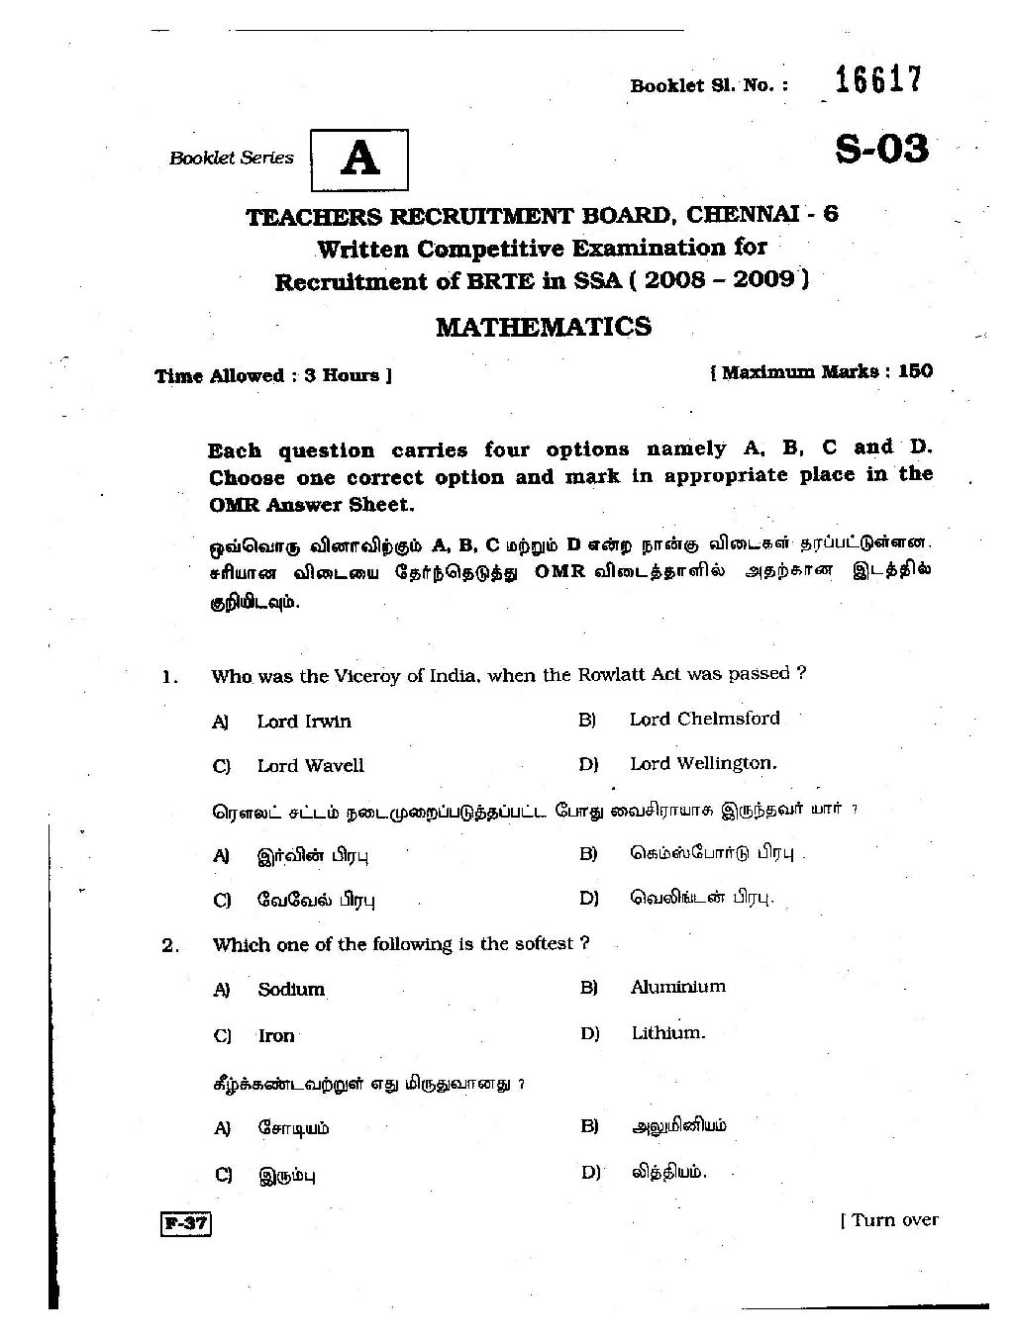 essay on mathematicians coursework academic service essay on mathematicians